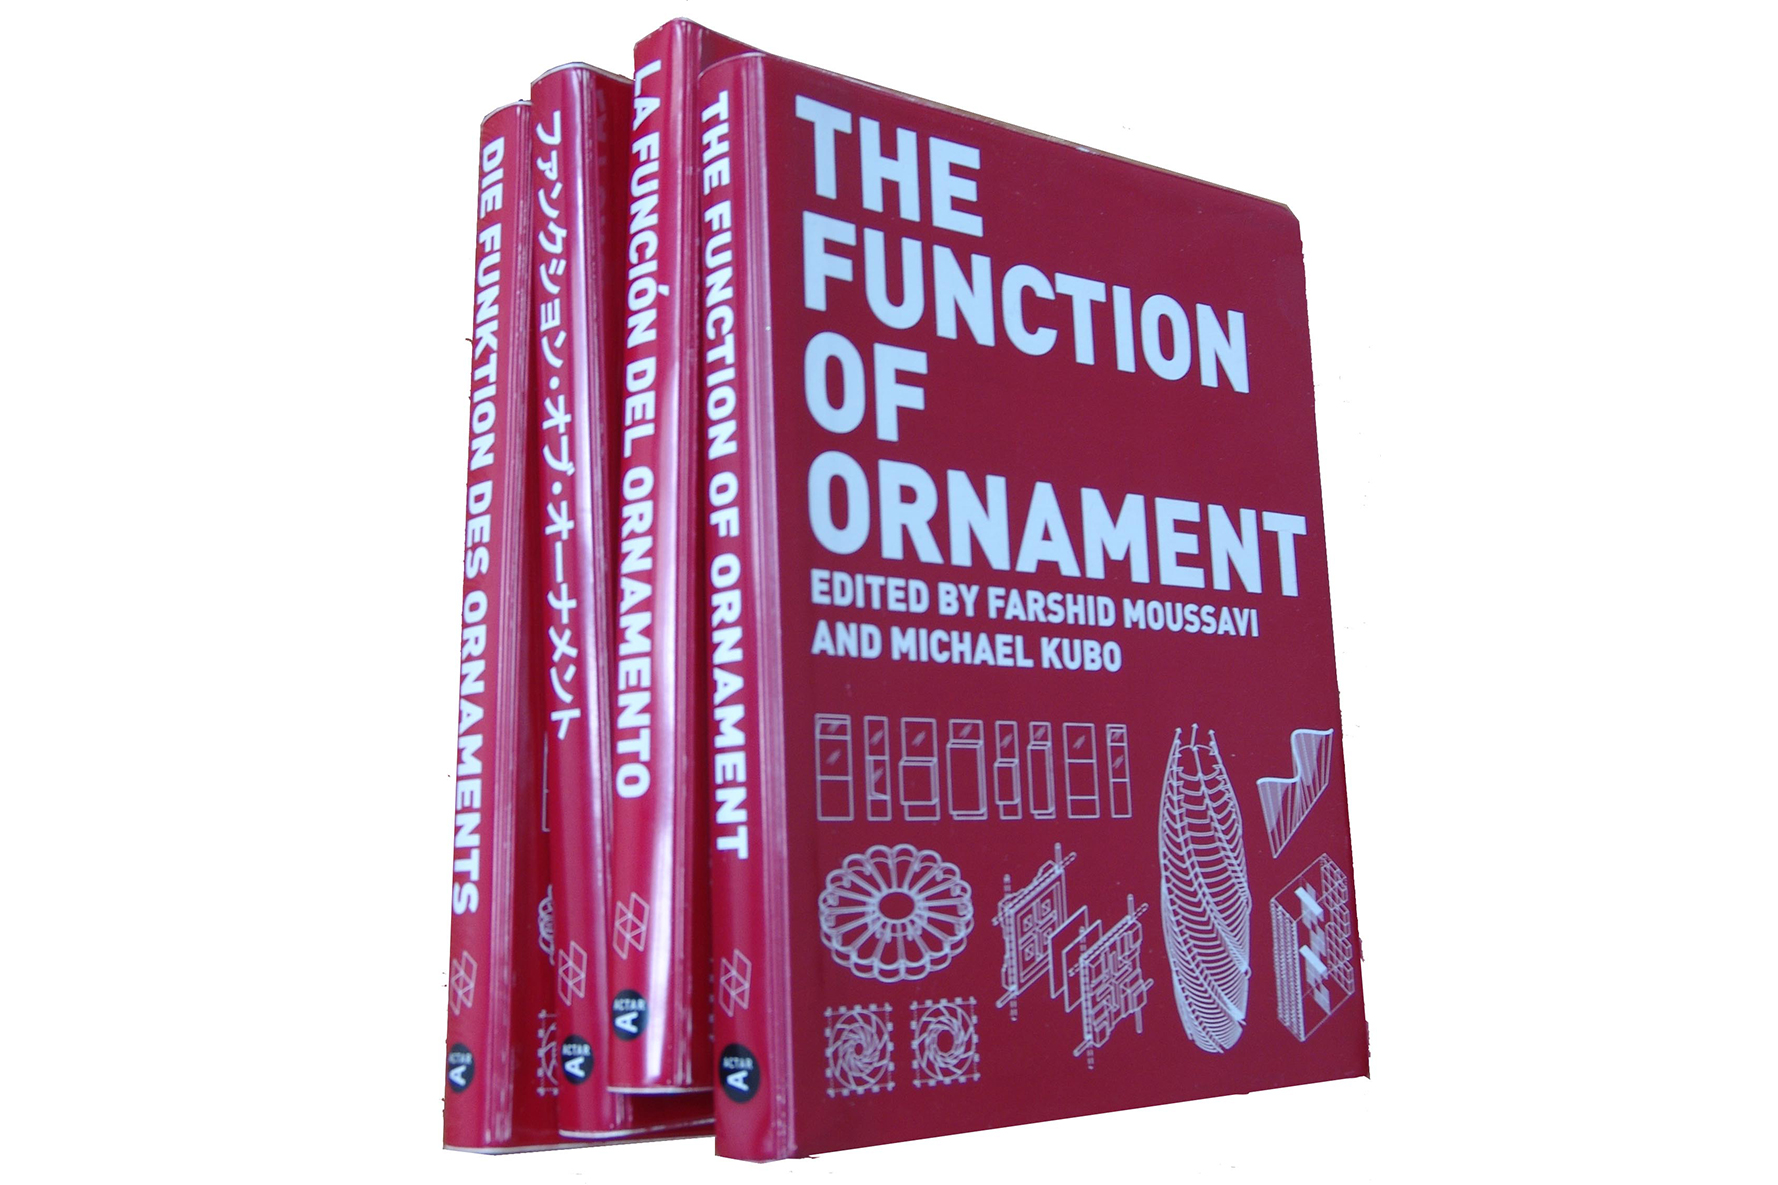 The Function of Ornament by Farshid Moussavi